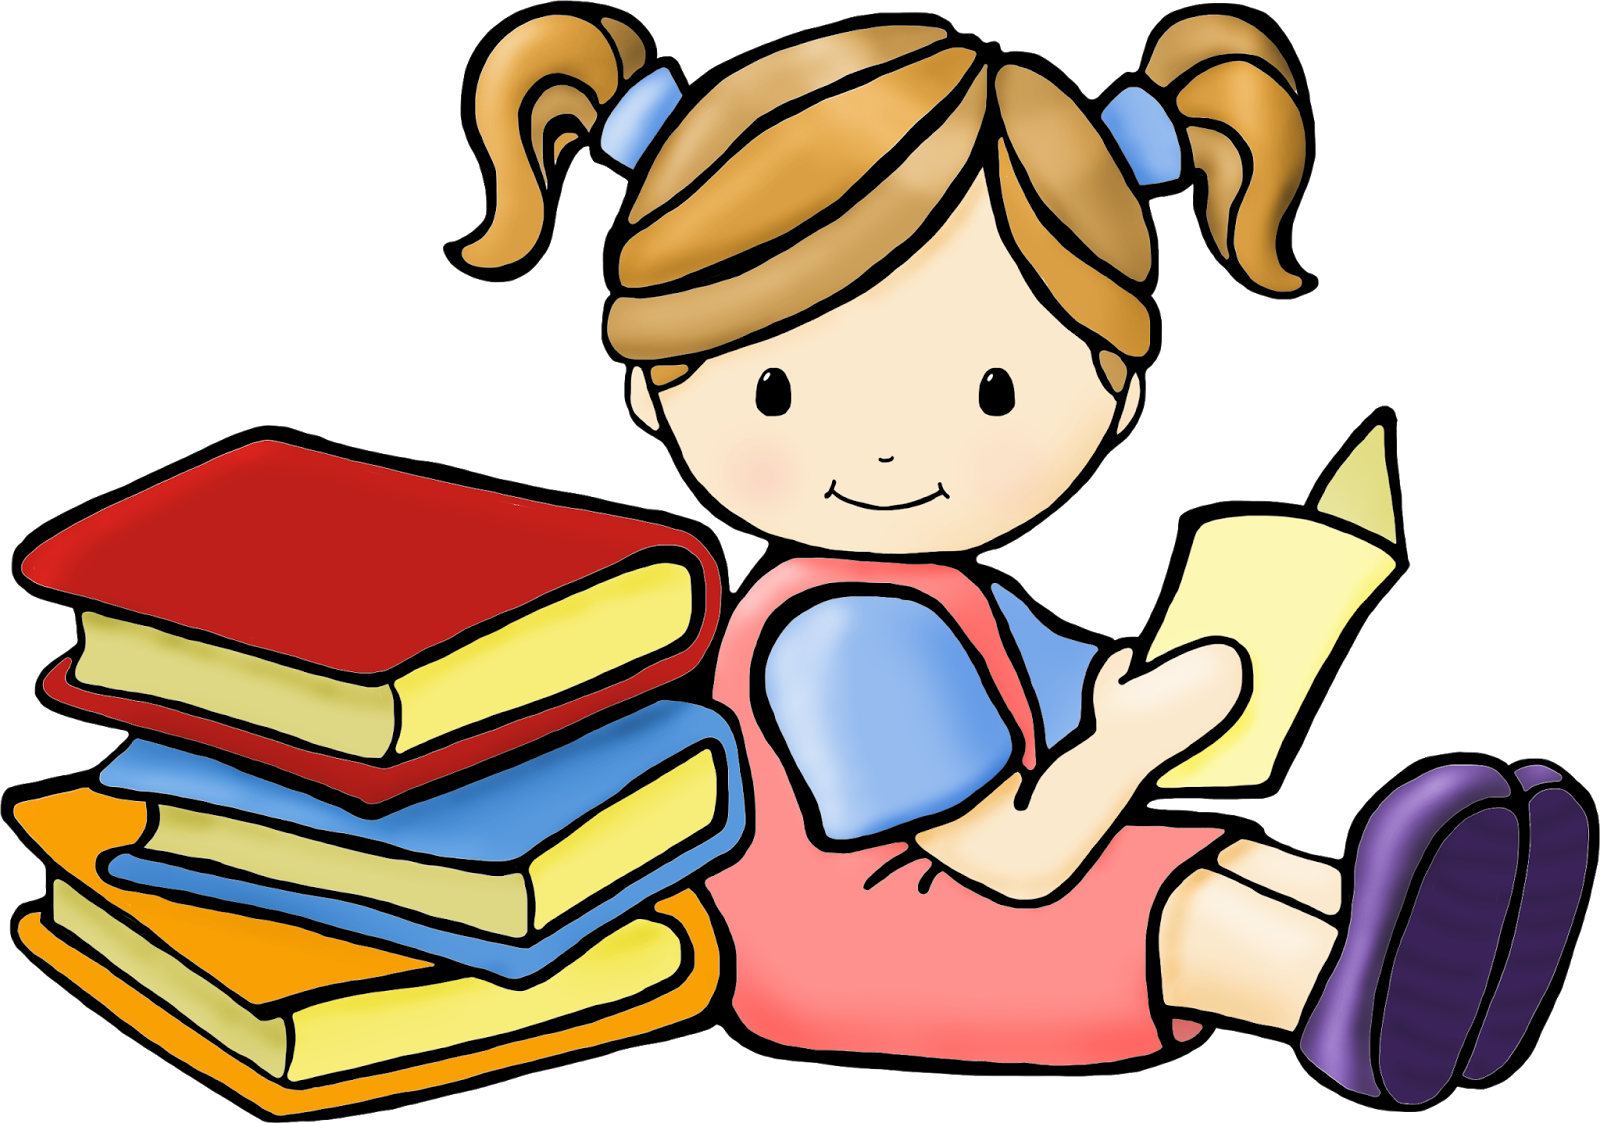 Children book clipart picture free download 28+ Collection of Kids Reading Books Clipart | High quality, free ... picture free download